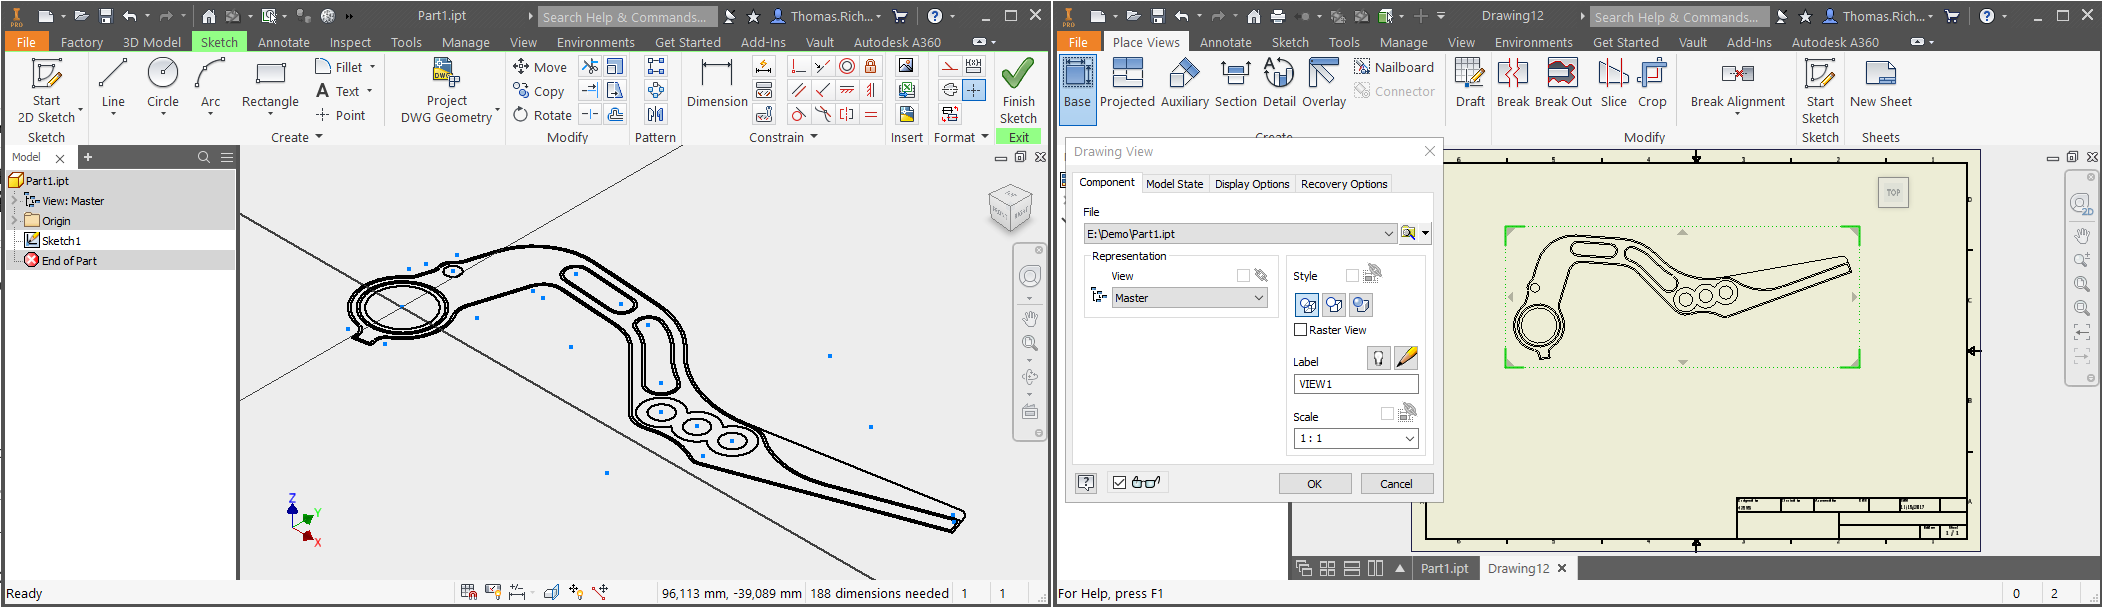 Display 2d And 3d Content In A Drawing View Inventor Products Diagram Software As You Can See The Sketch Geometry From Part Will Be Directly Displayed If We Look Perpendicular To